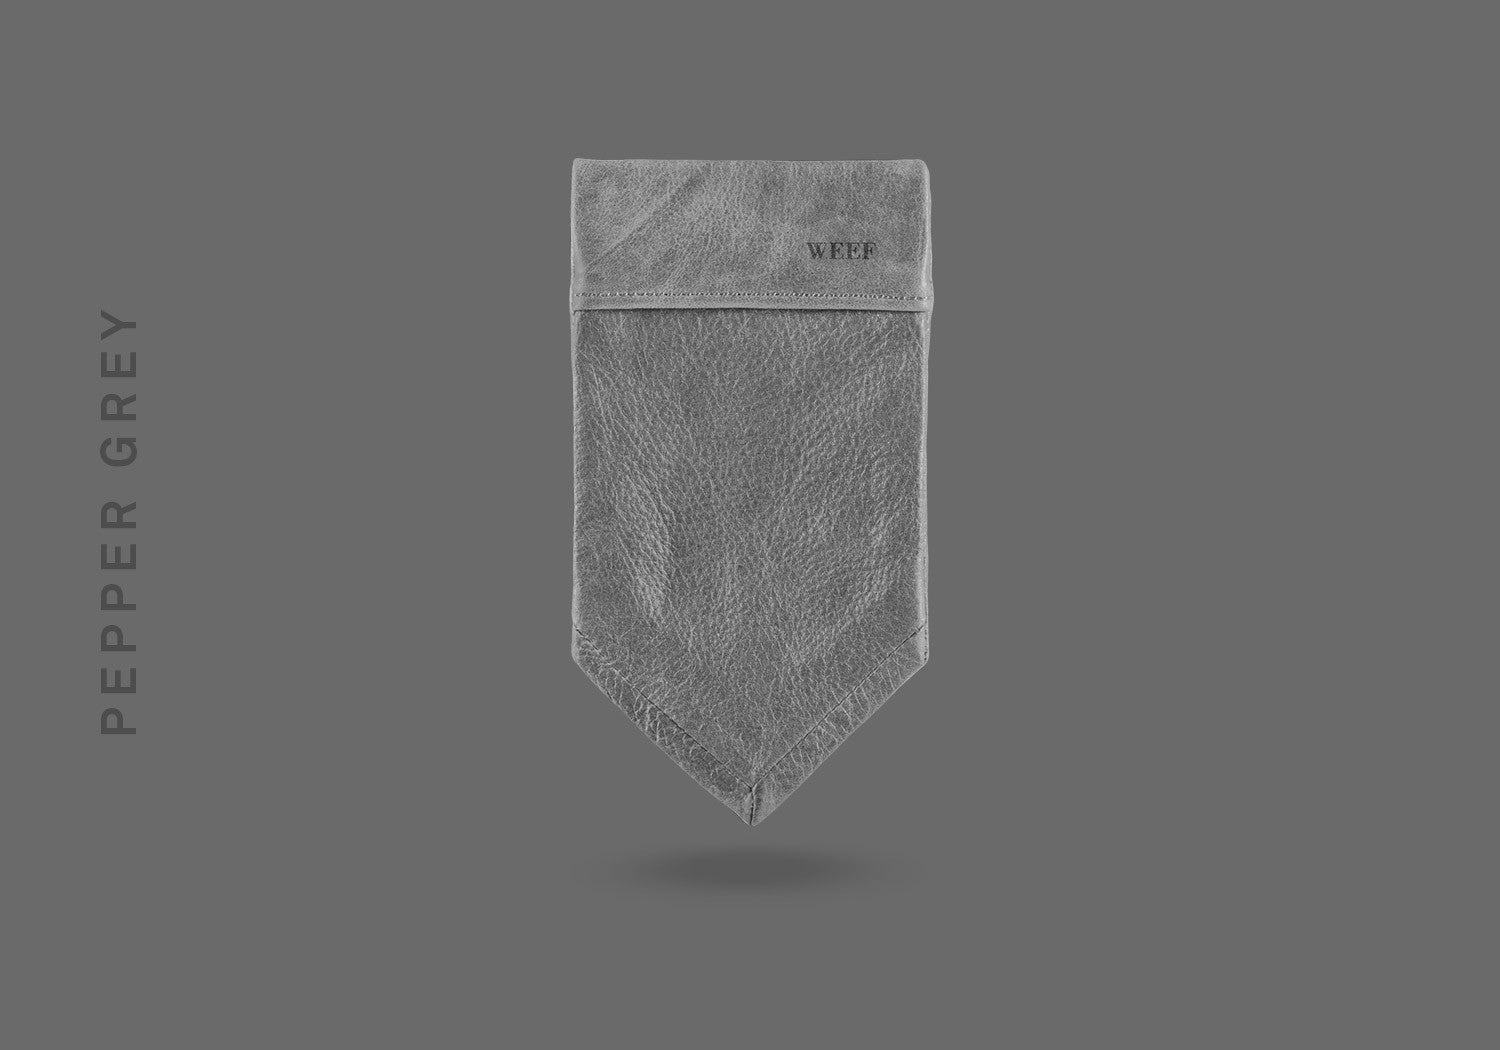 This pepper grey WEEF handmade leather pocket square is a great present or gift idea for dapper and stylish gentlemen for fathers day, valentines day or Christmas.